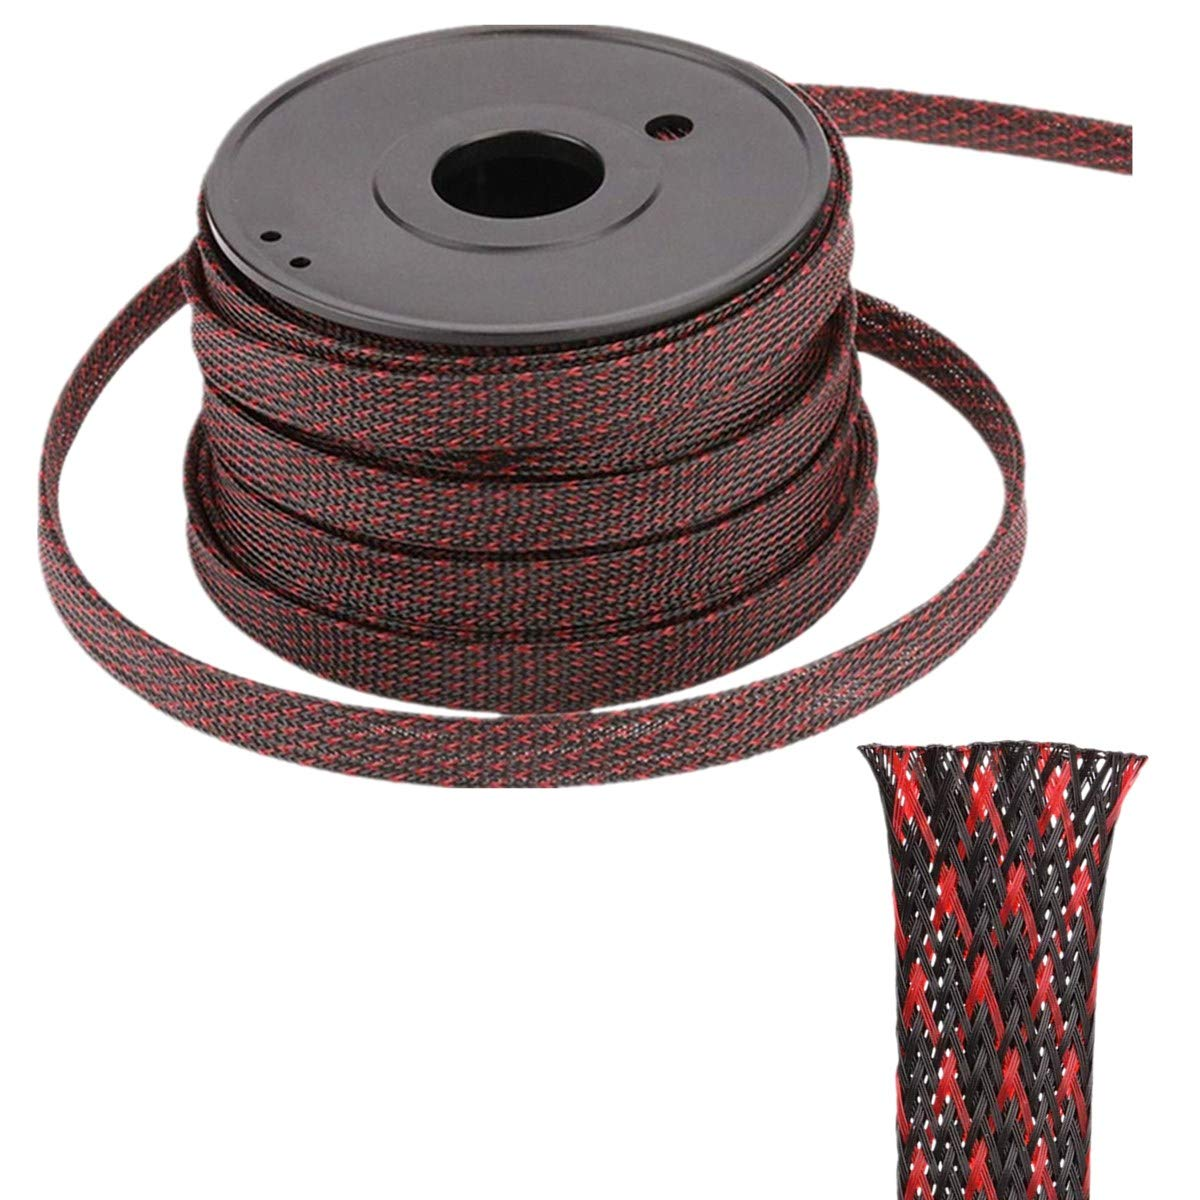 Audio Premium Wires Sleeving Management and Organizer and Other Home or Office Device Cords-Red/&Black Protector for TV 100ft-1//2 inch Flexible PET Expandable Braided Cable Sleeve PC